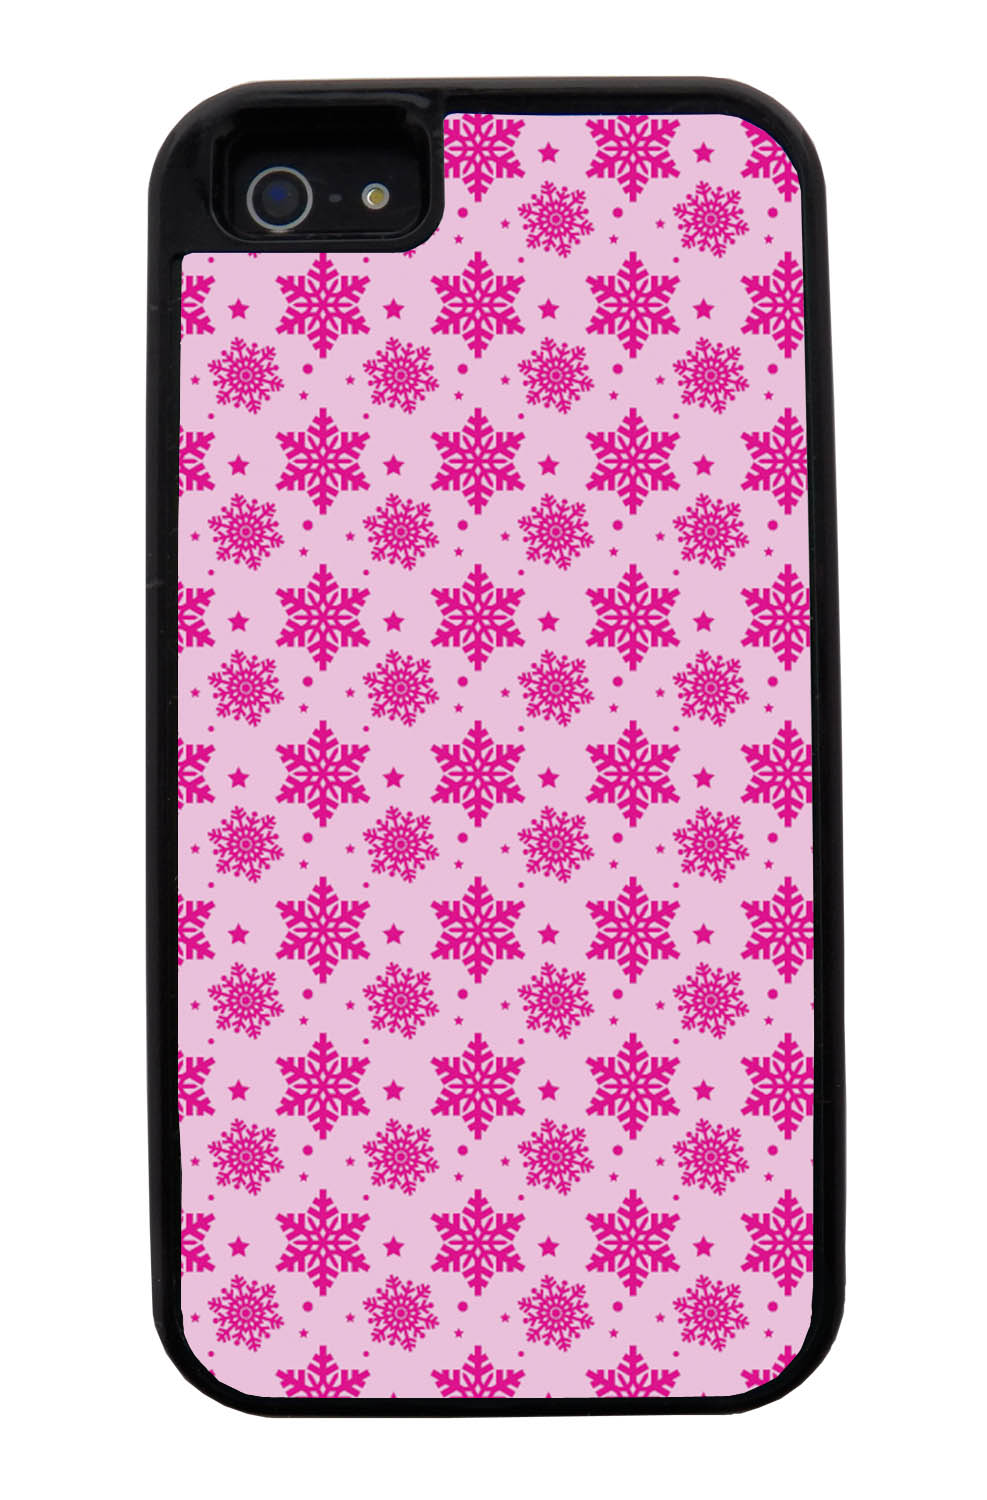 Apple iPhone 5 / 5S Pink Case - Hot Pink Snowflakes on Pink - Fall And Winter - Black Tough Hybrid Case